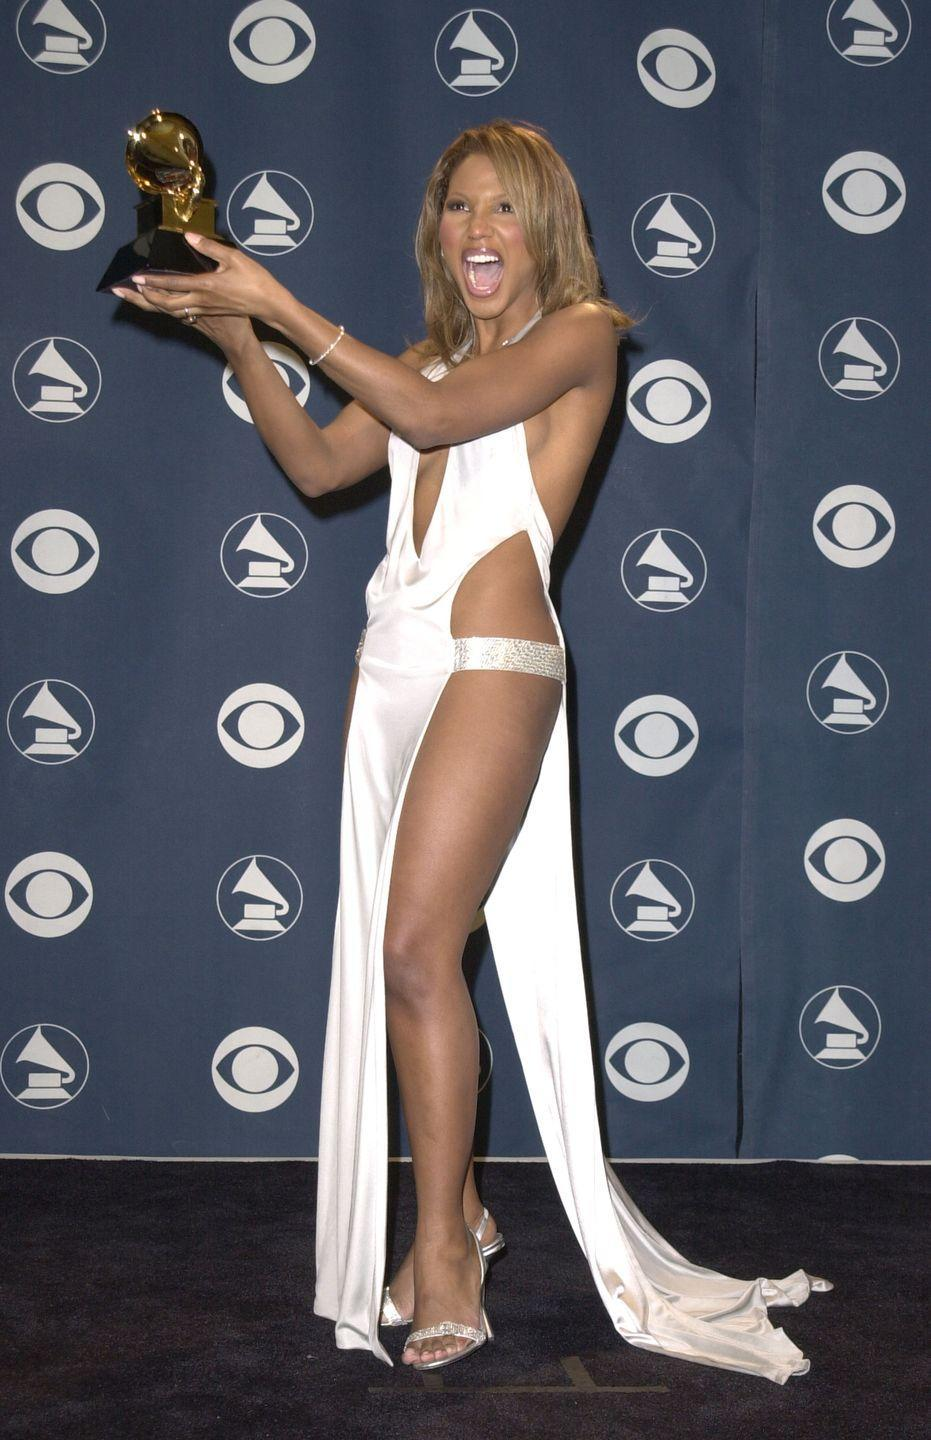 """<p>Braxton bared lots of skin in this Richard Tyler design that she wore to the 2001 Grammys. Although it was a successful night (she <a href=""""https://www.grammy.com/grammys/awards/43rd-annual-grammy-awards-2000"""" rel=""""nofollow noopener"""" target=""""_blank"""" data-ylk=""""slk:won the Grammy for Female R&B Vocal performance"""" class=""""link rapid-noclick-resp"""">won the Grammy for Female R&B Vocal performance</a>), one critic <a href=""""https://products.kitsapsun.com/archive/2001/02-23/0051_grammy_awards__toni_braxton_was_d.html"""" rel=""""nofollow noopener"""" target=""""_blank"""" data-ylk=""""slk:wrote"""" class=""""link rapid-noclick-resp"""">wrote</a> that the dress """"made the attractive Braxton look as though she had yards of toilet paper stuck in all the wrong places.""""</p>"""